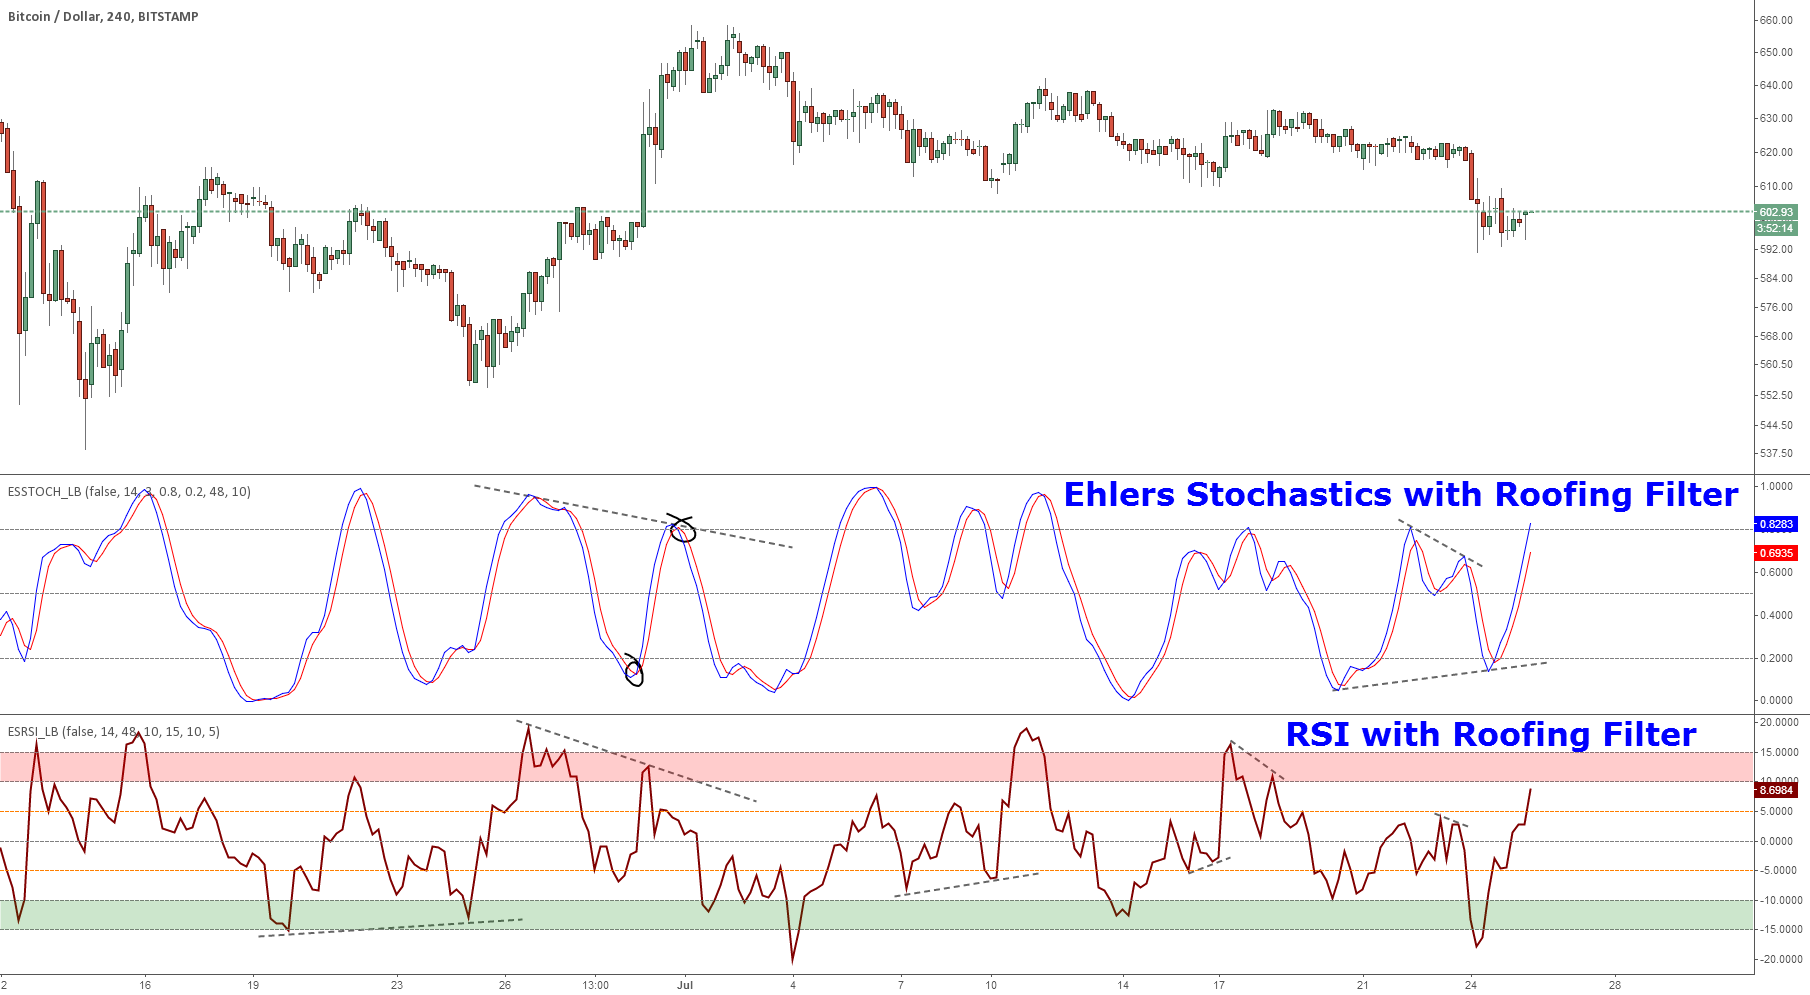 Ehlers Smoothed Stochastic & RSI with Roofing Filters